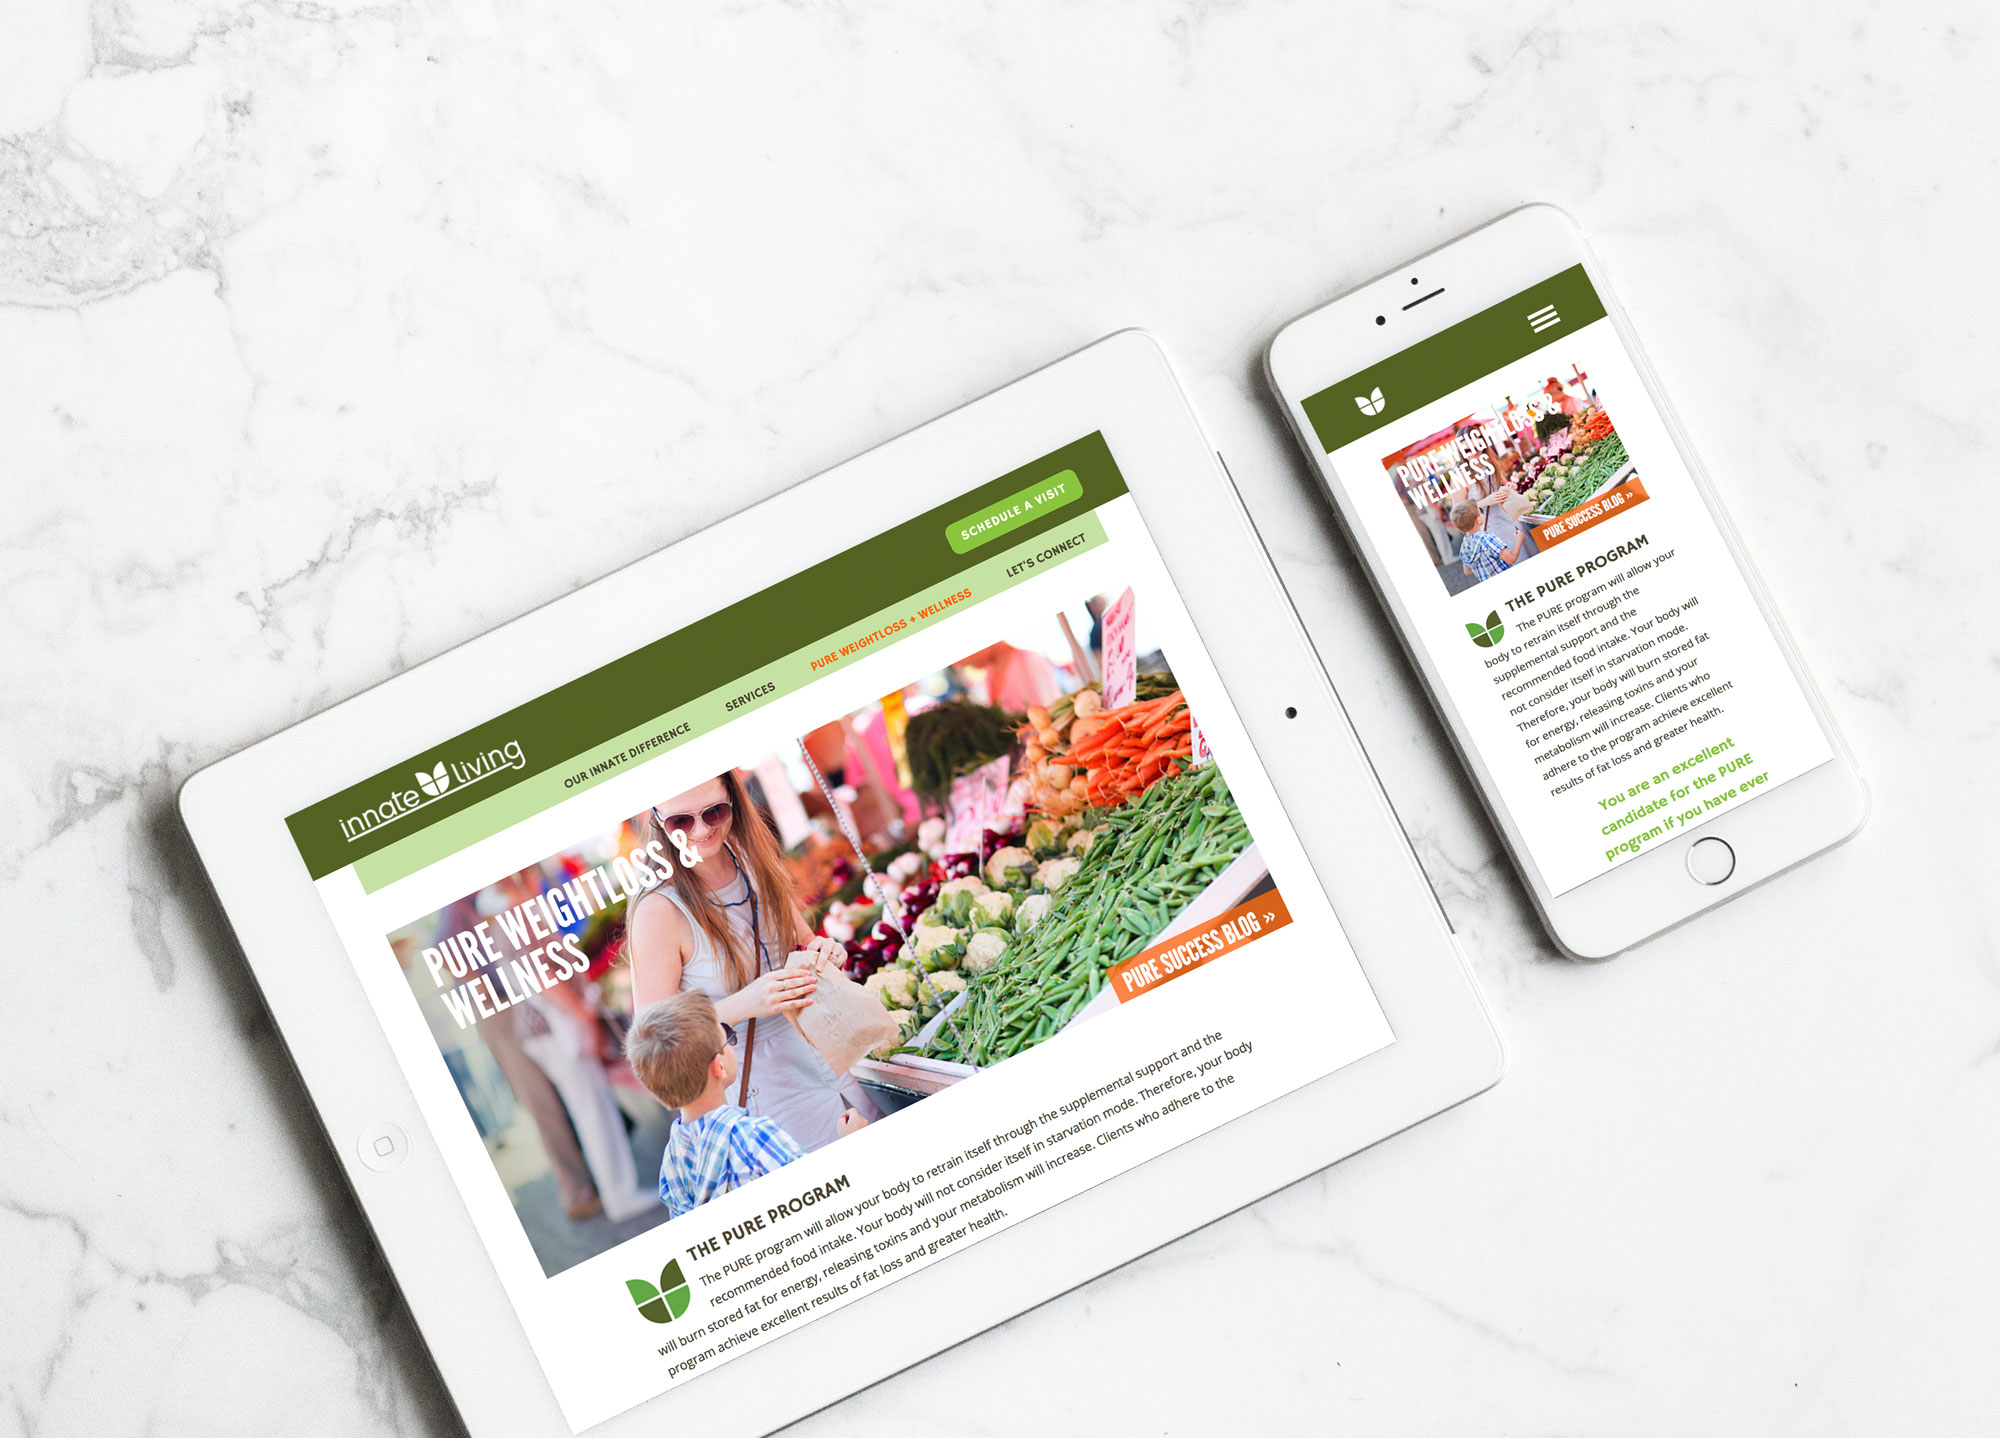 grass-creative-branding-identity-nutrition-NYC-NJ-pure-wellness-website-mobile.jpg